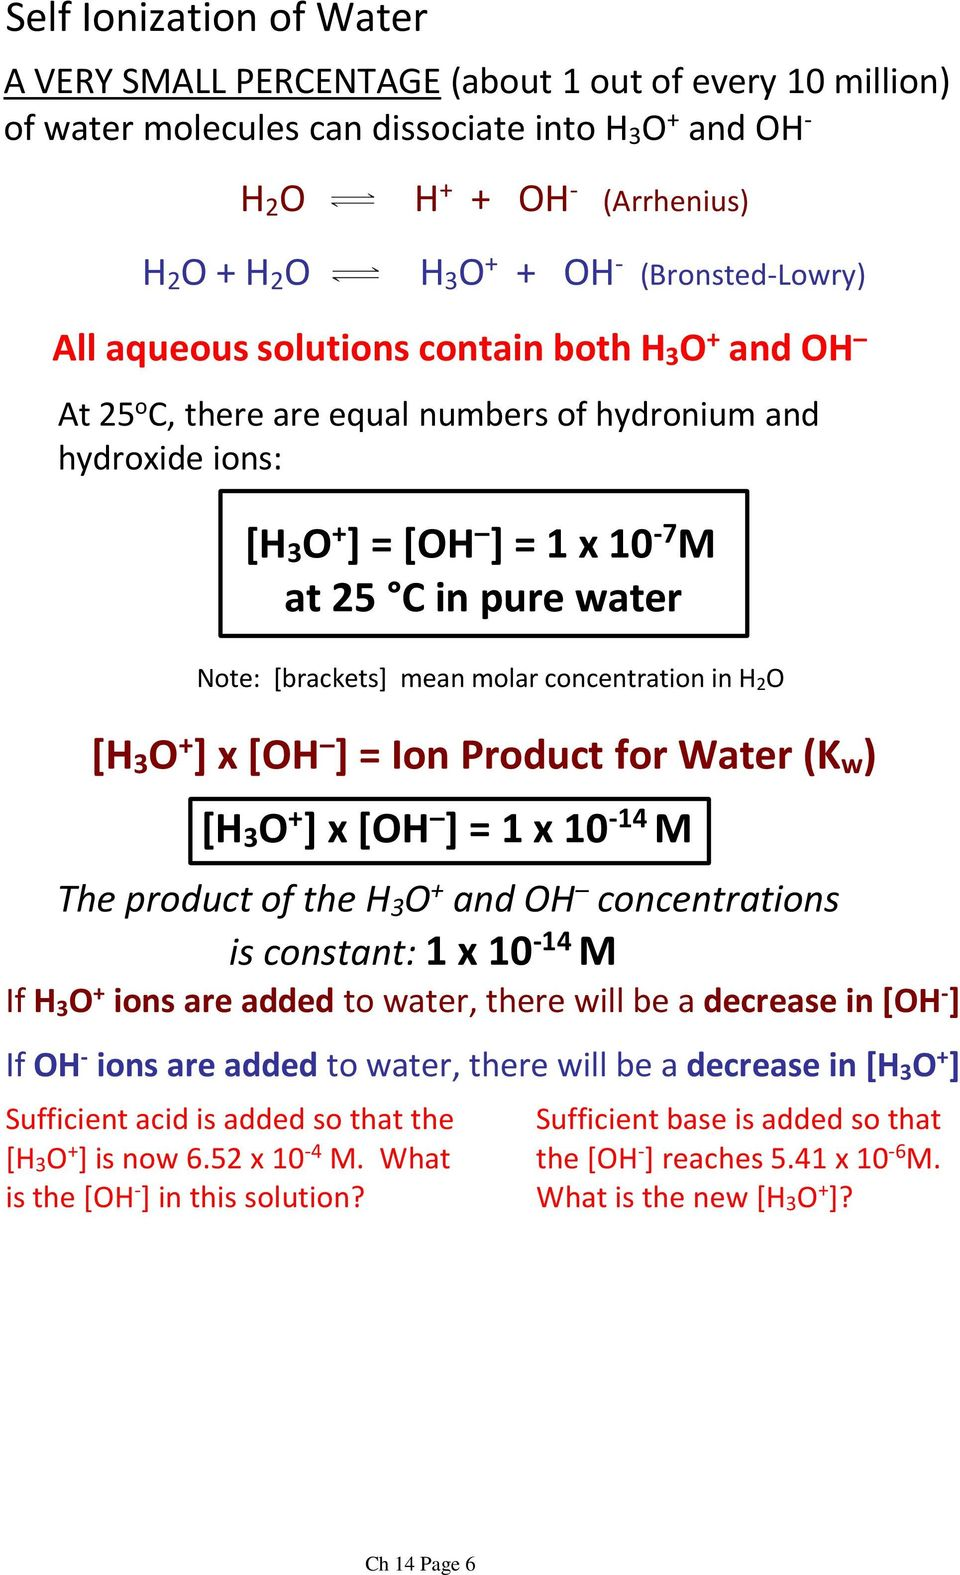 Note: [brackets] mean molar concentration in H 2 O [H 3 O + ] x [OH ] = Ion Product for Water (K w ) [H 3 O + ] x [OH ] = 1 x 10-14 M The product of the H 3 O + and OH concentrations is constant:1 x